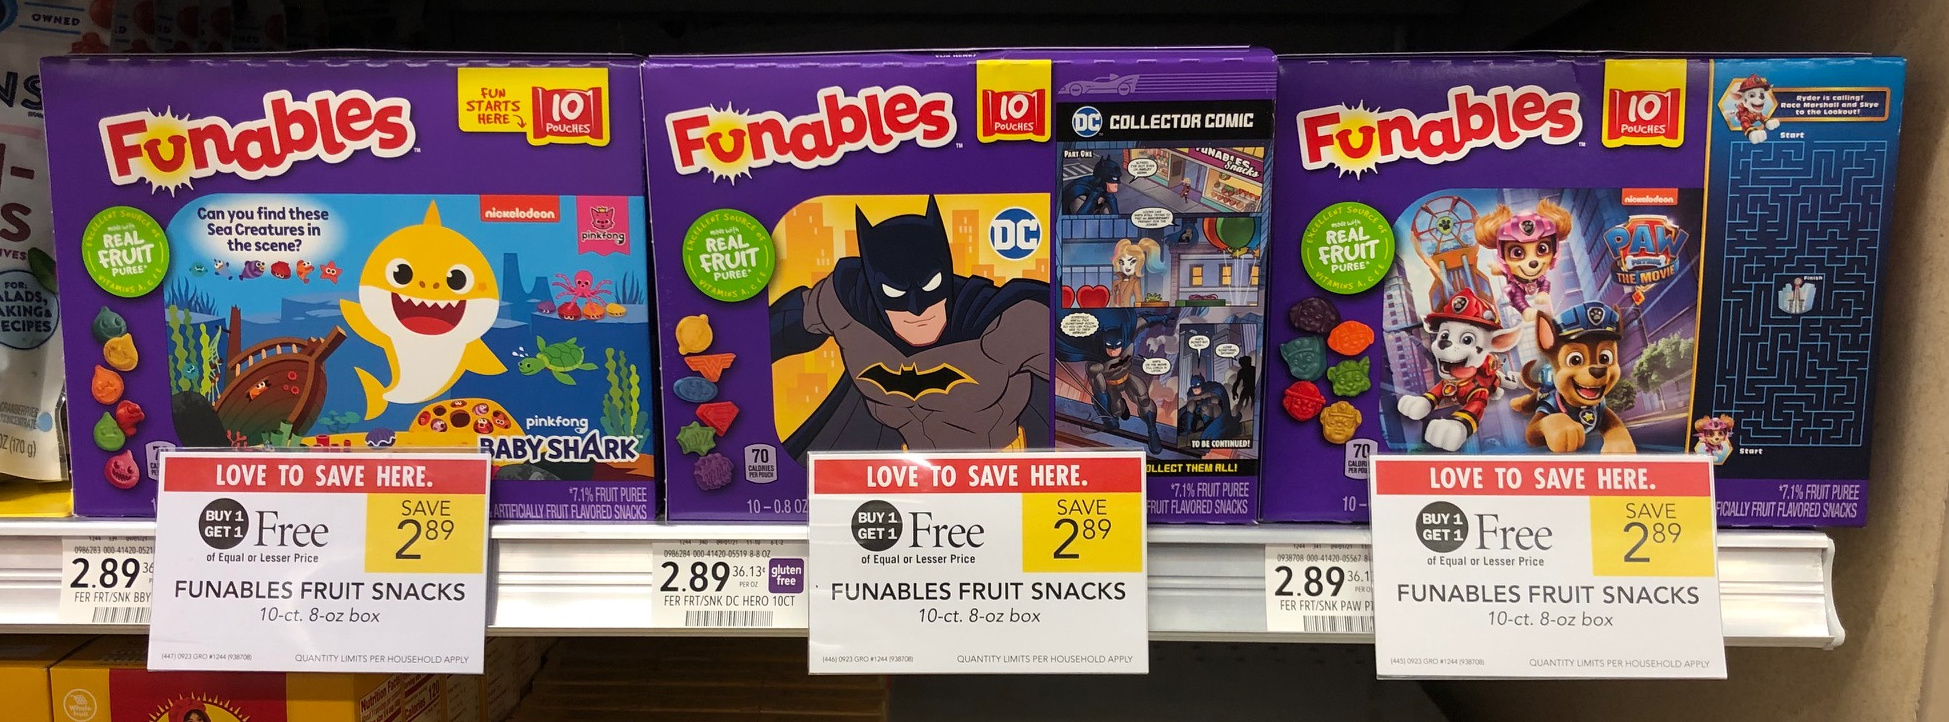 Funables Fruit Snacks As Low As FREE At Publix on I Heart Publix